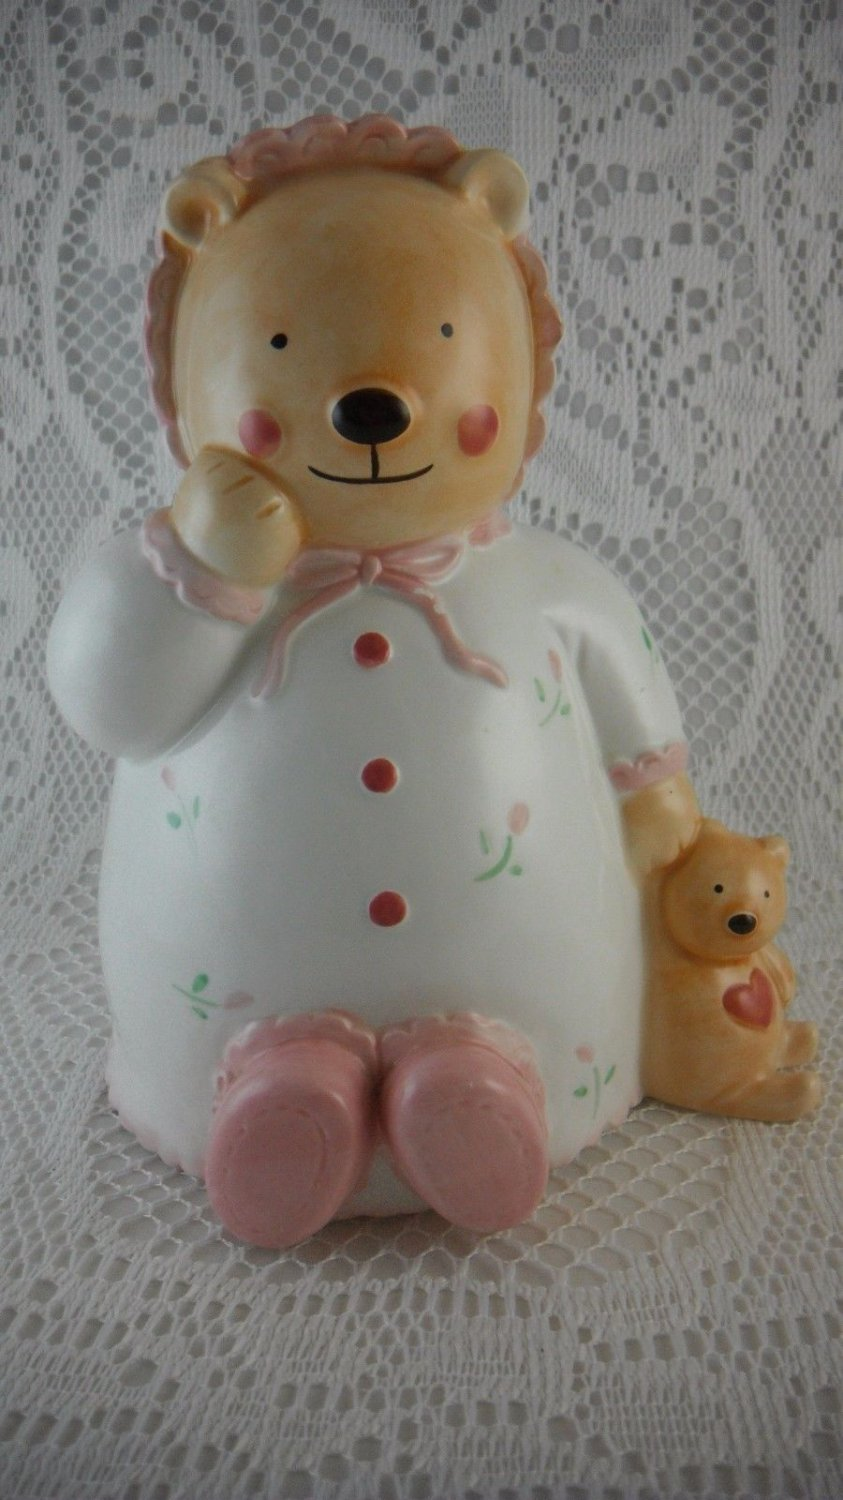 Ceramic Baby Bear and Buddy Bear Coin Bank Fund Jar Pastel Colored Cute tblep1